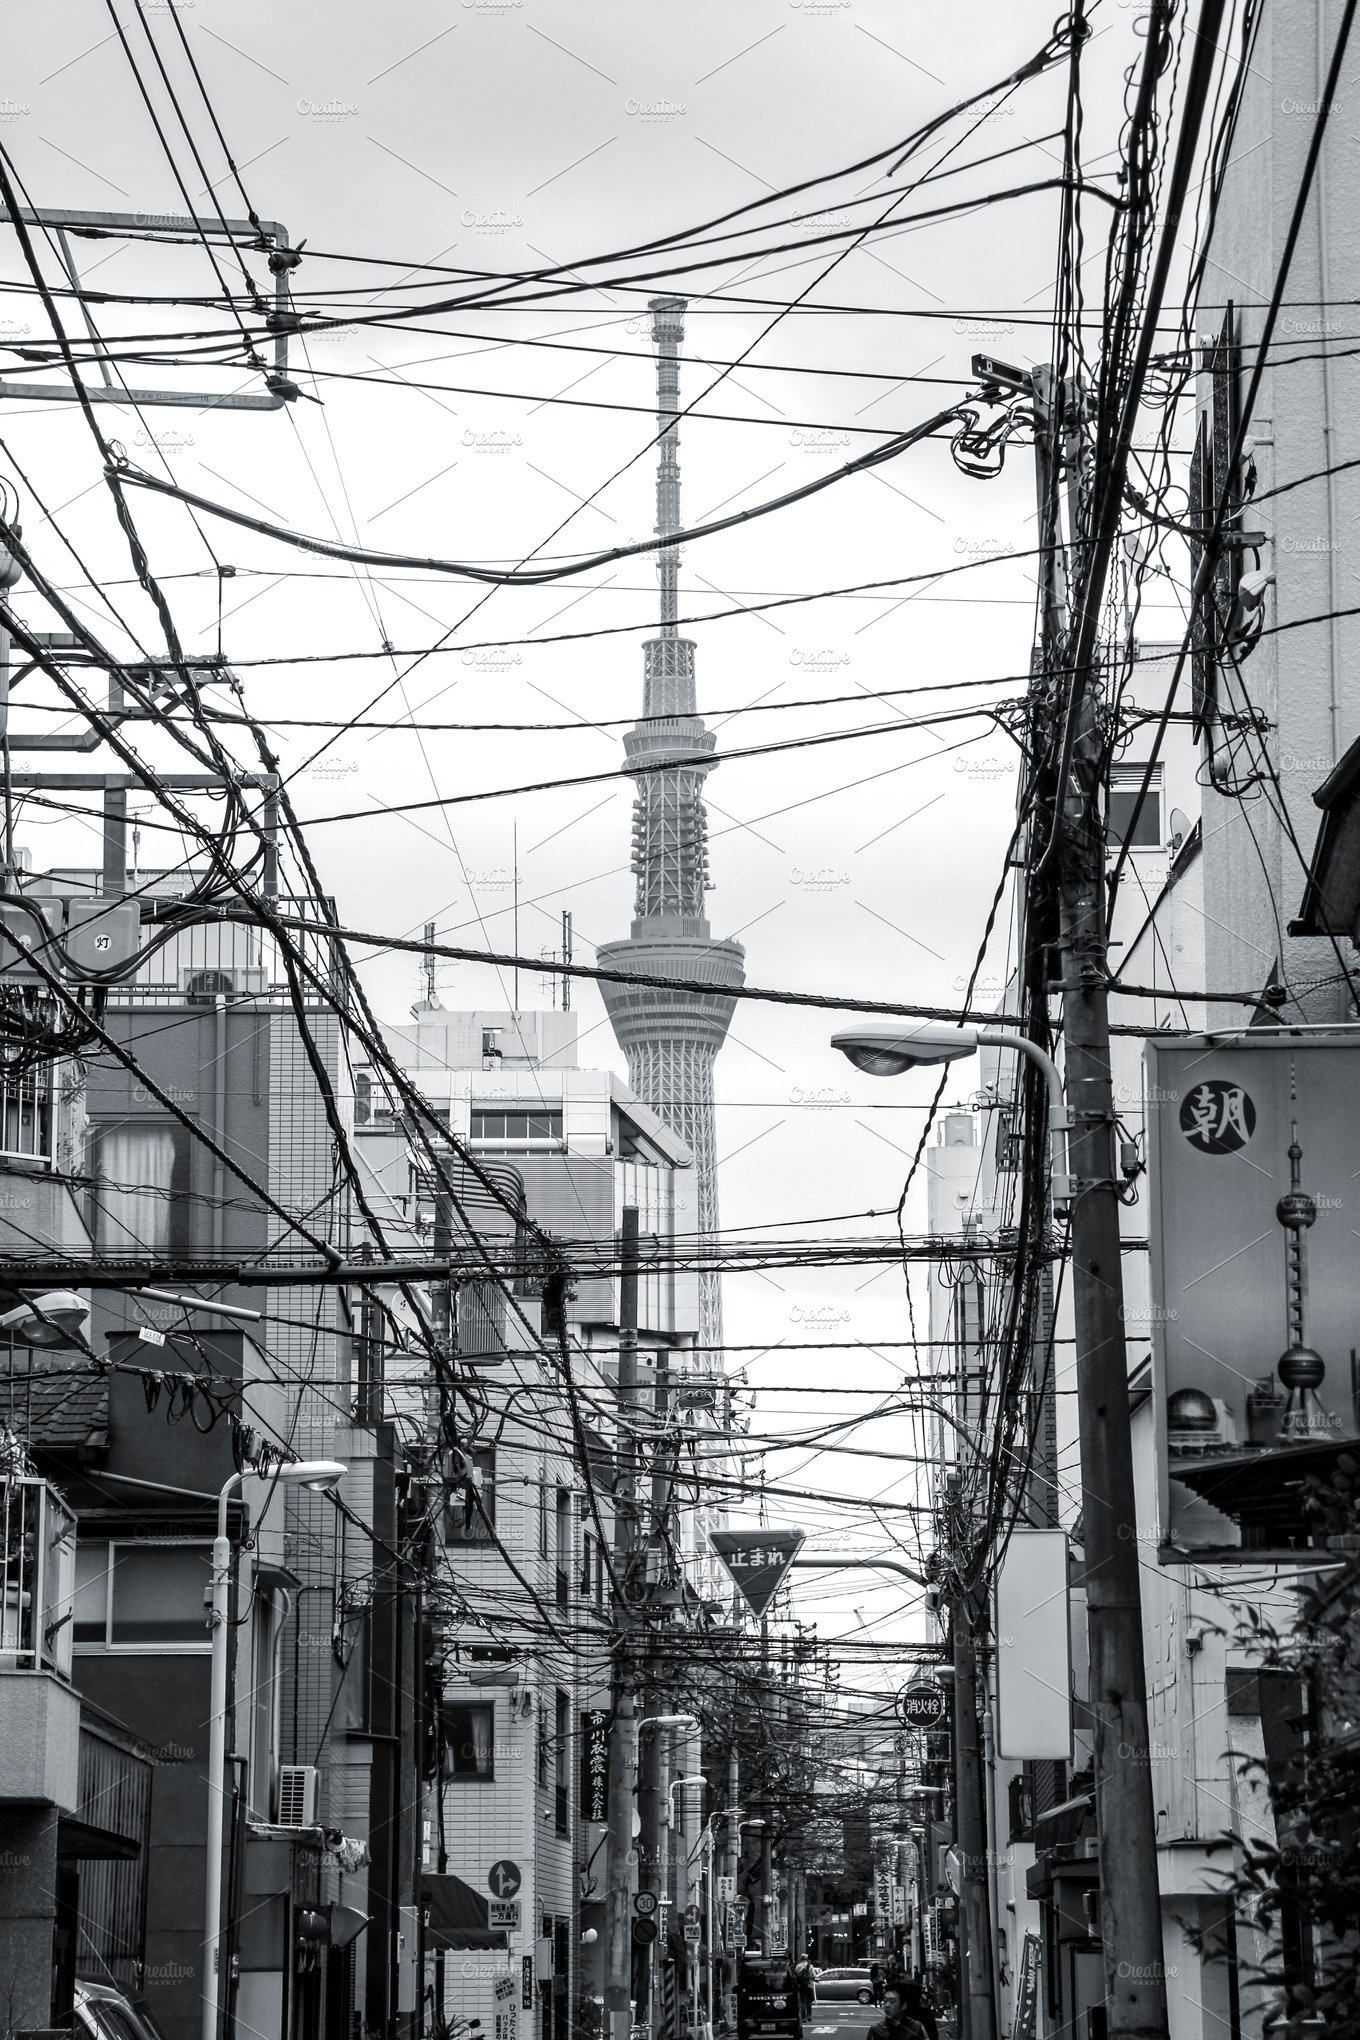 Tokyo street with electrical wires ~ Architecture Photos ~ Creative ...